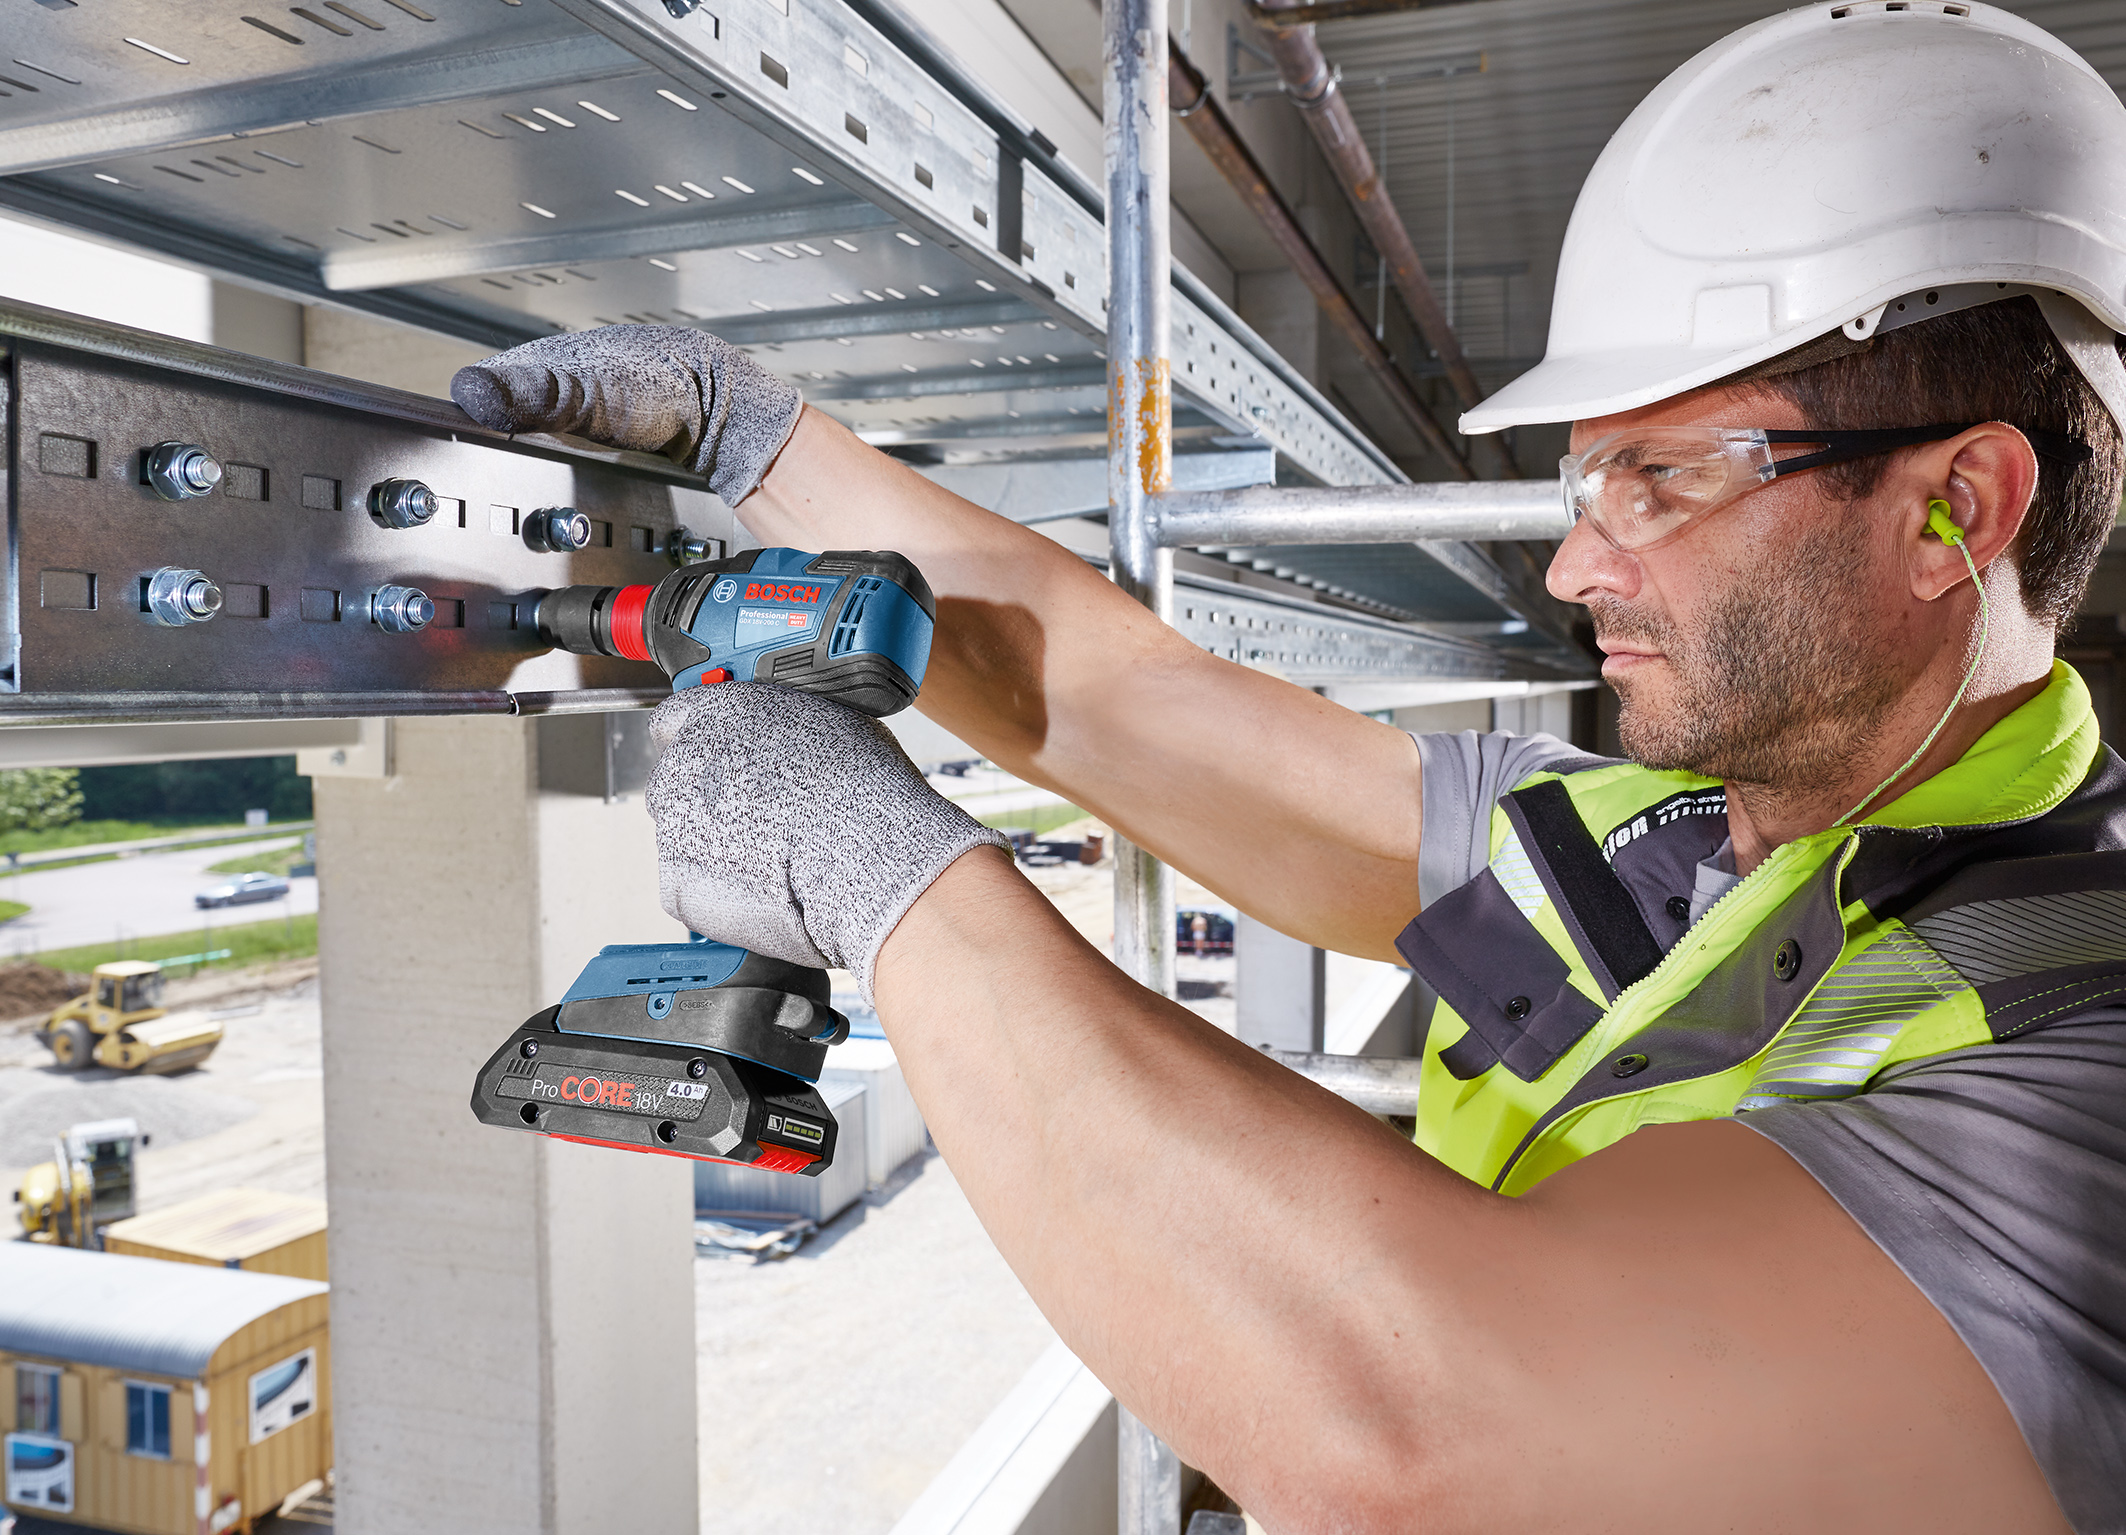 Considerable advantages over cordless screwdrivers: New cordless impact drivers from Bosch for professionals